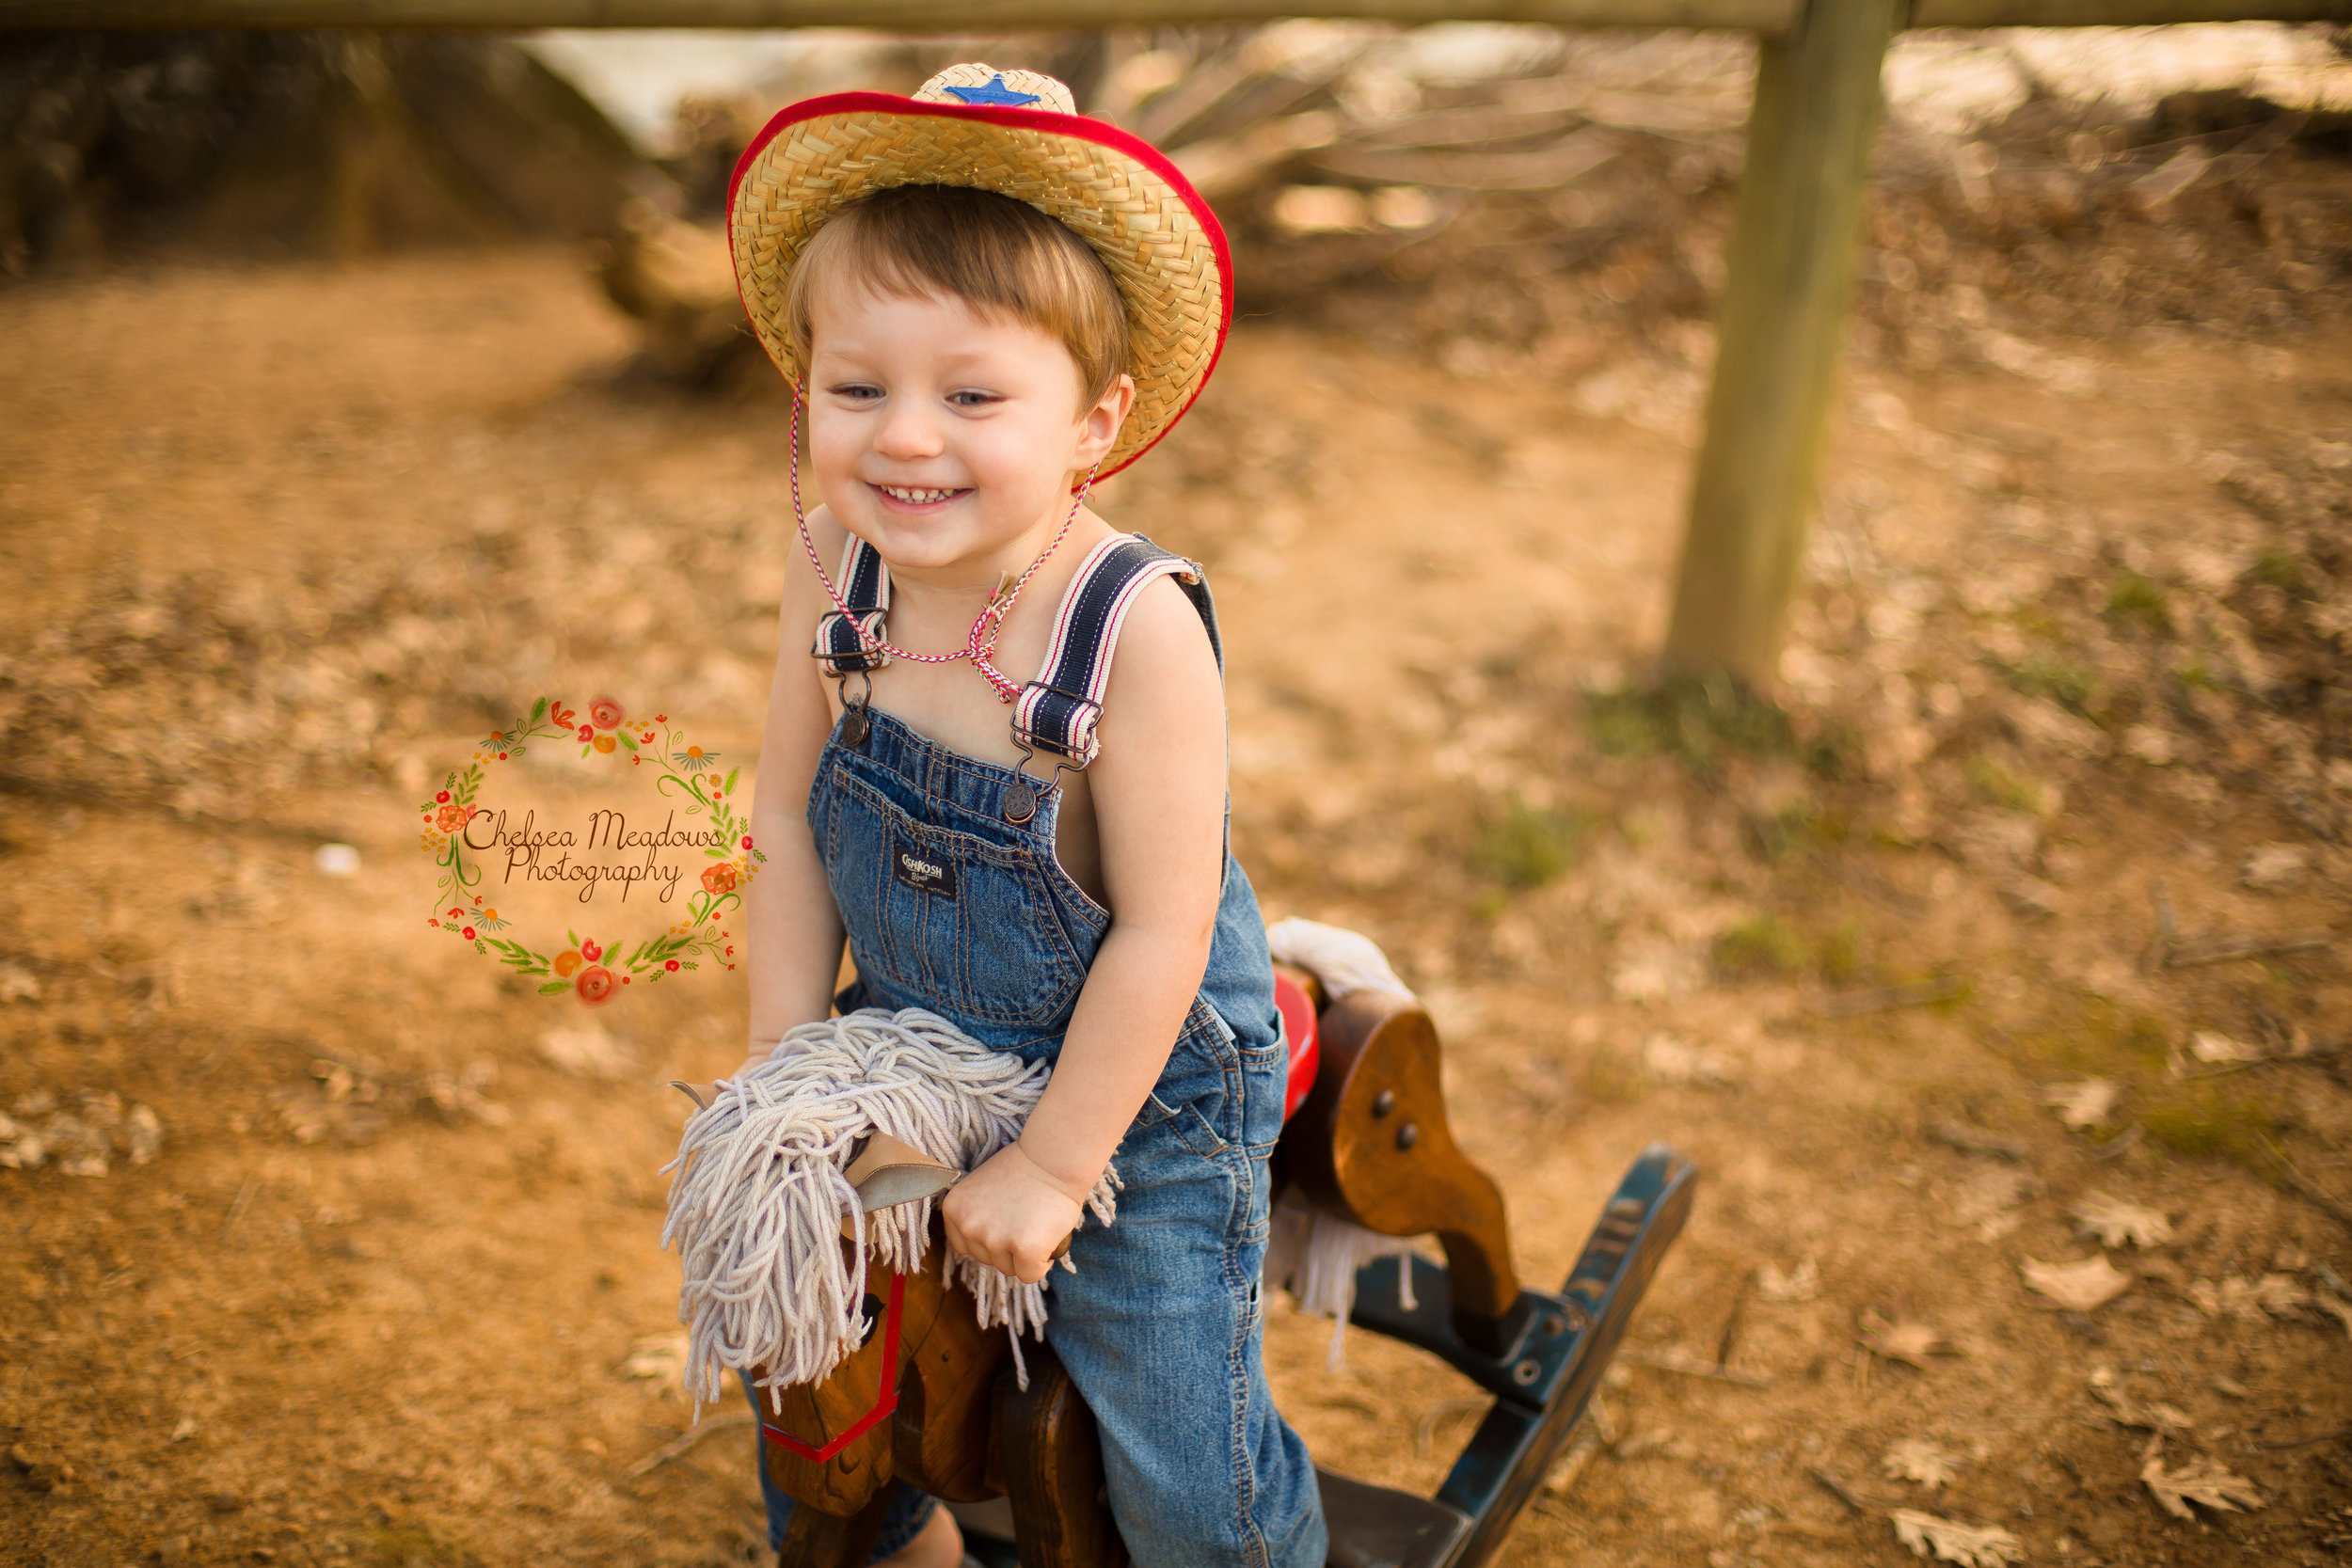 Grayson Cowboy Photos - Nashville family Photographer - Chelsea Meadows Photography (28)_edited-2.jpg